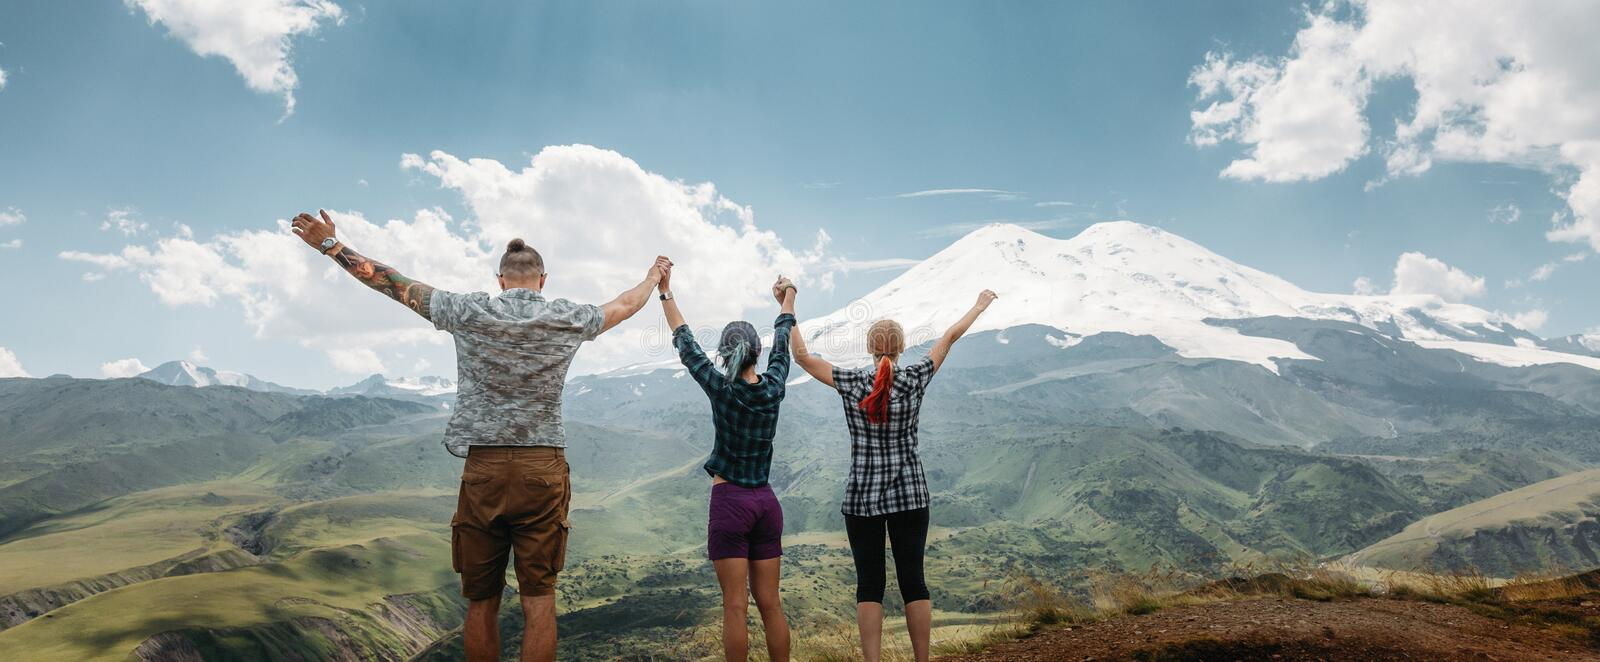 Three friends joined hands and raised their hands up, enjoying the view of the mountains in the summer. Lifestyle Travel Happy stock photography